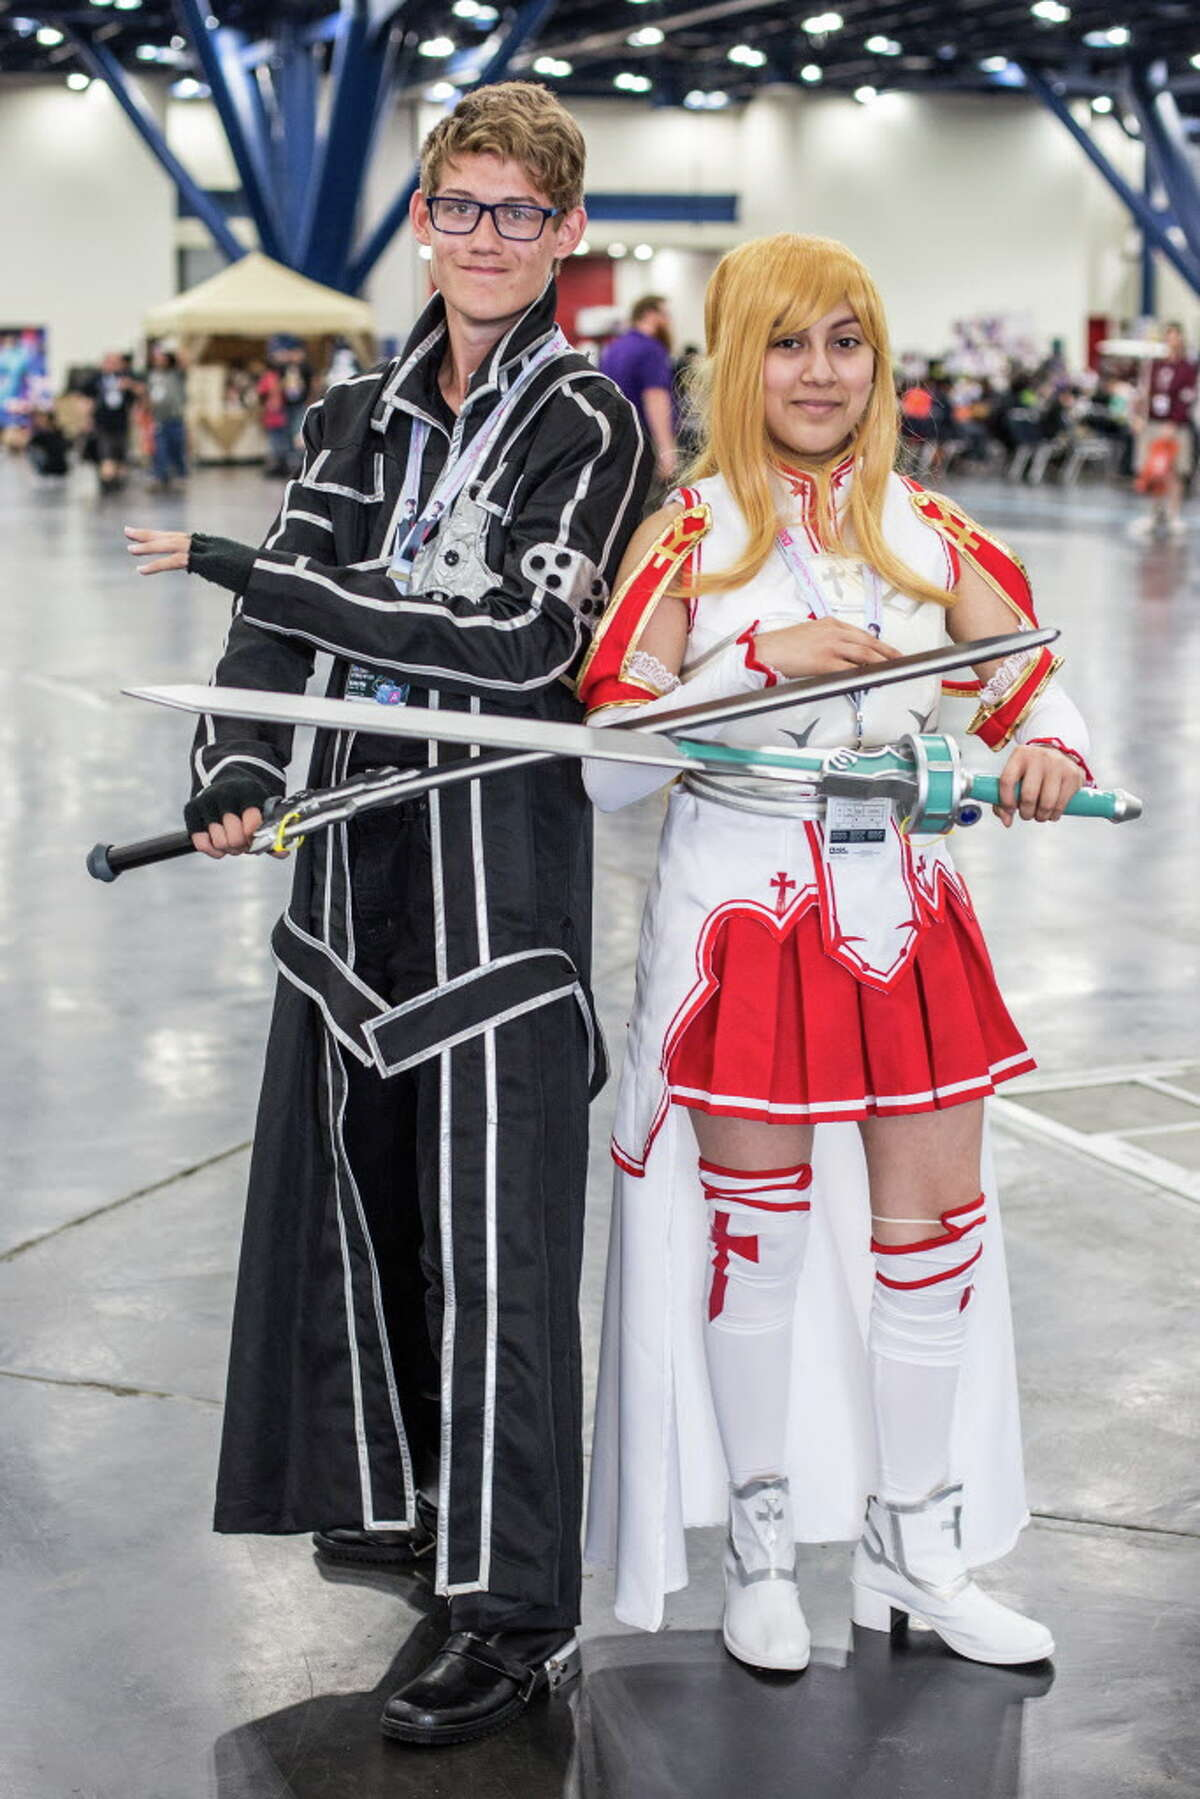 Jacob Wiles and Jazmine De La Fuente of Houston pose for a picture during Anime Matsuri held at George R. Brown Convention Center Friday April 7, 2017.